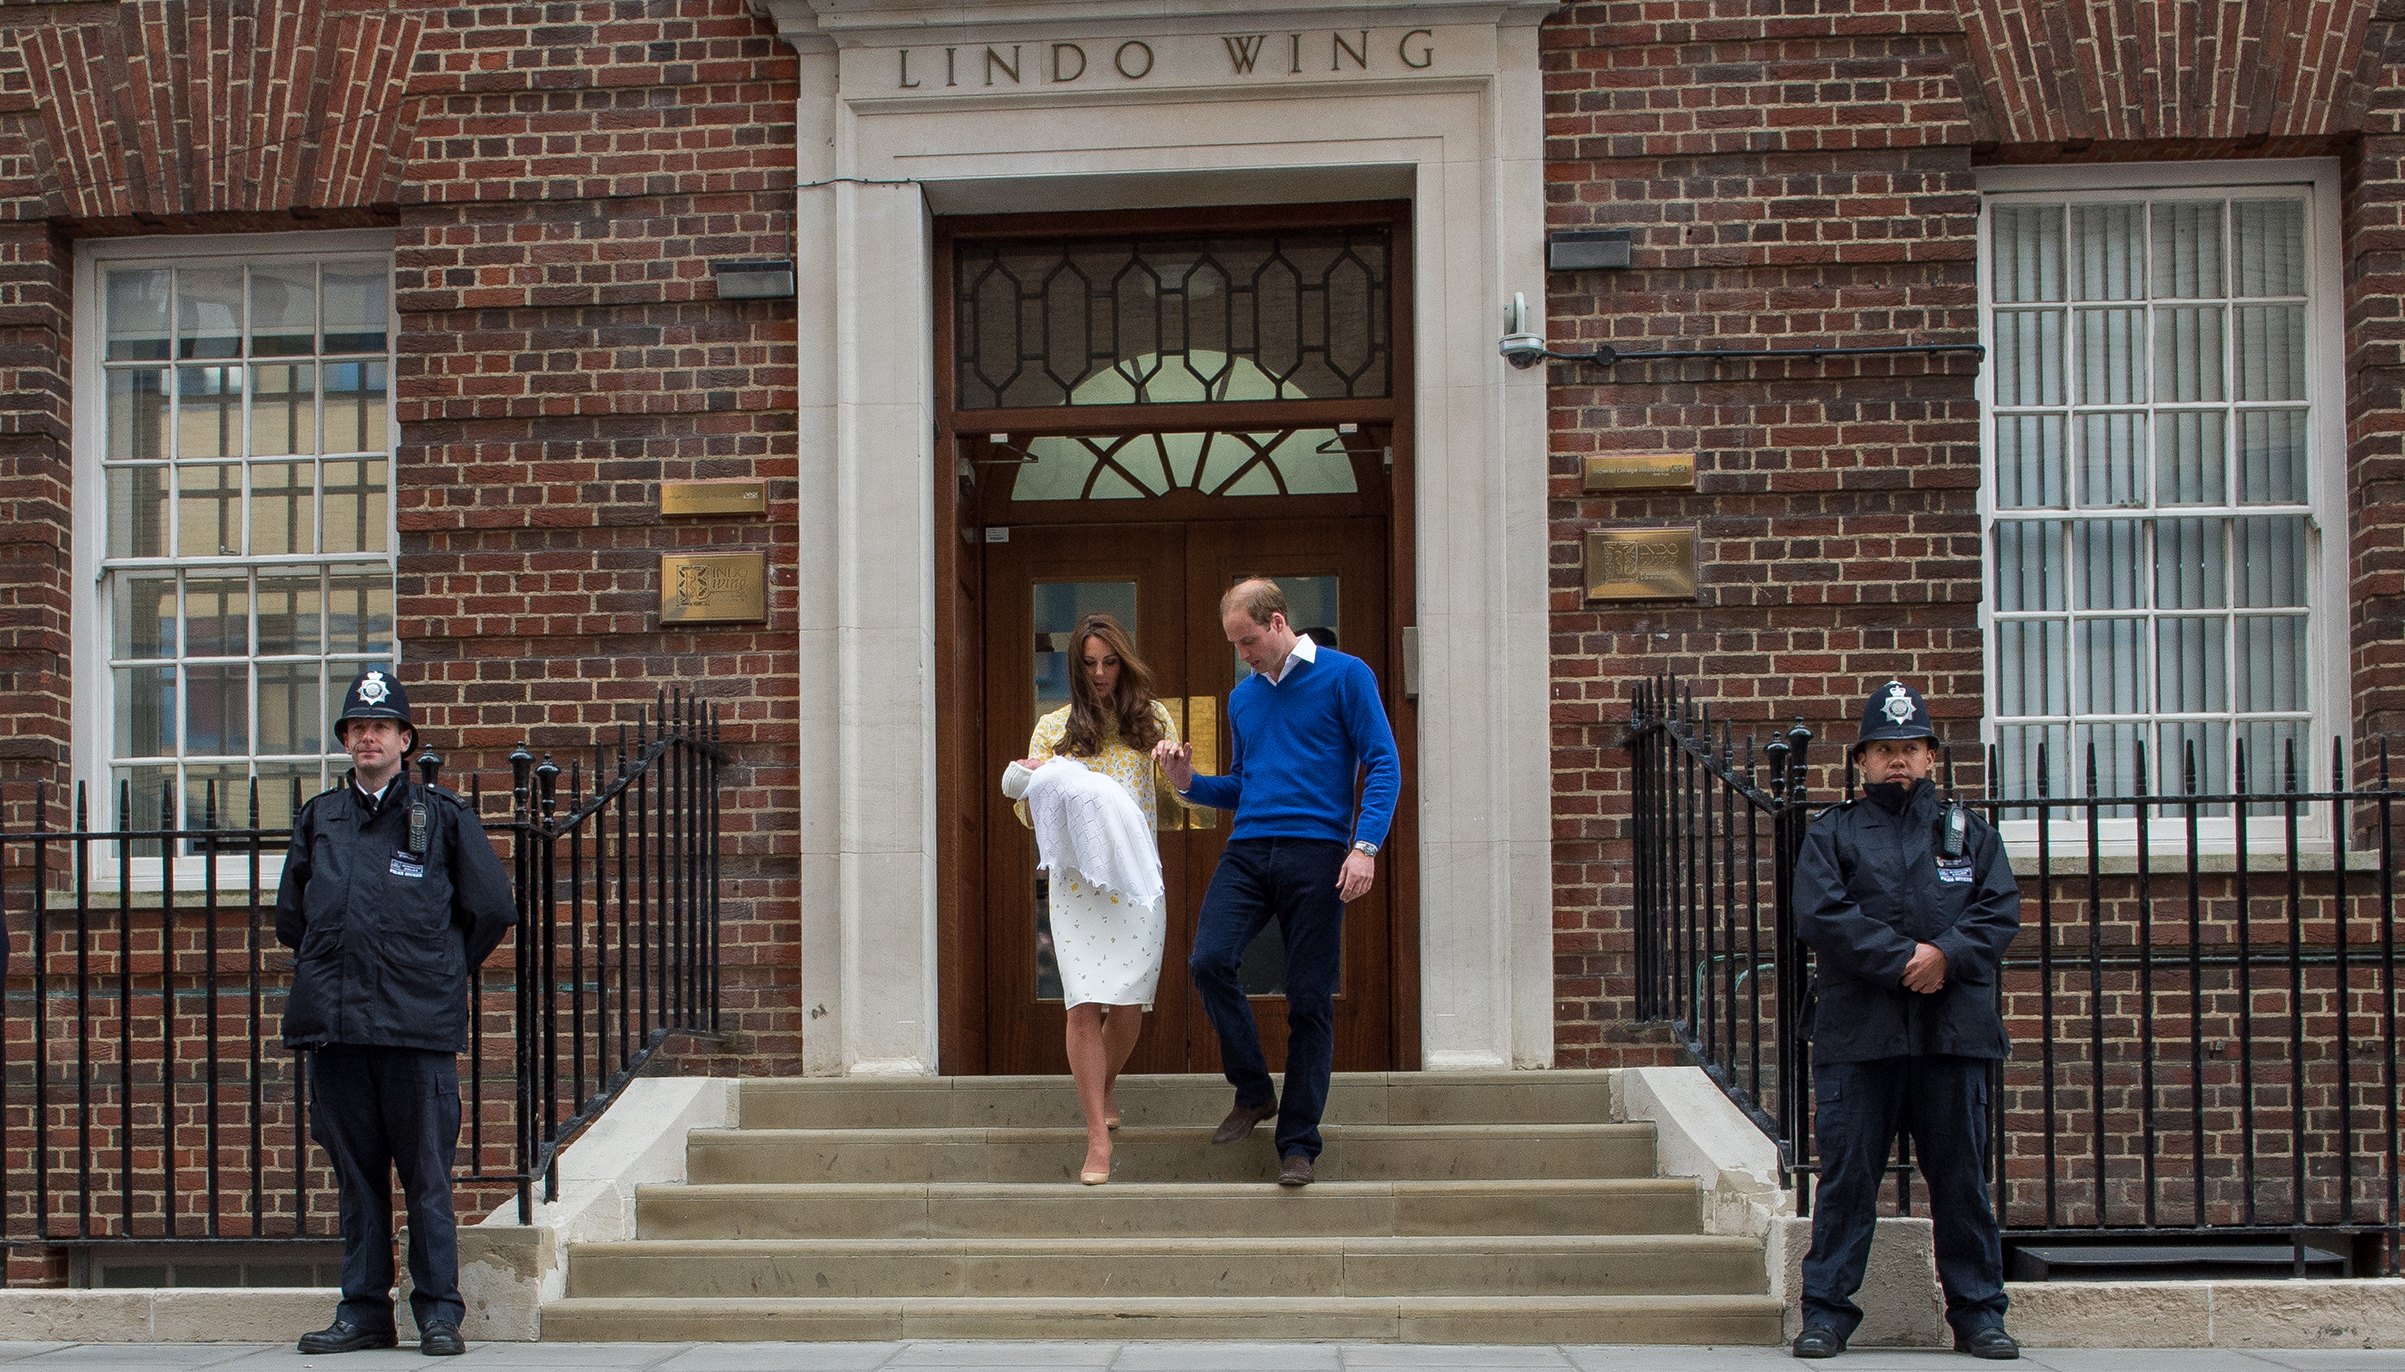 Prince William, Duke of Cambridge, and Catherine, Duchess of Cambridge, depart the Lindo Wing with their newborn baby daughter at St. Mary's Hospital in London on May 2, 2015.